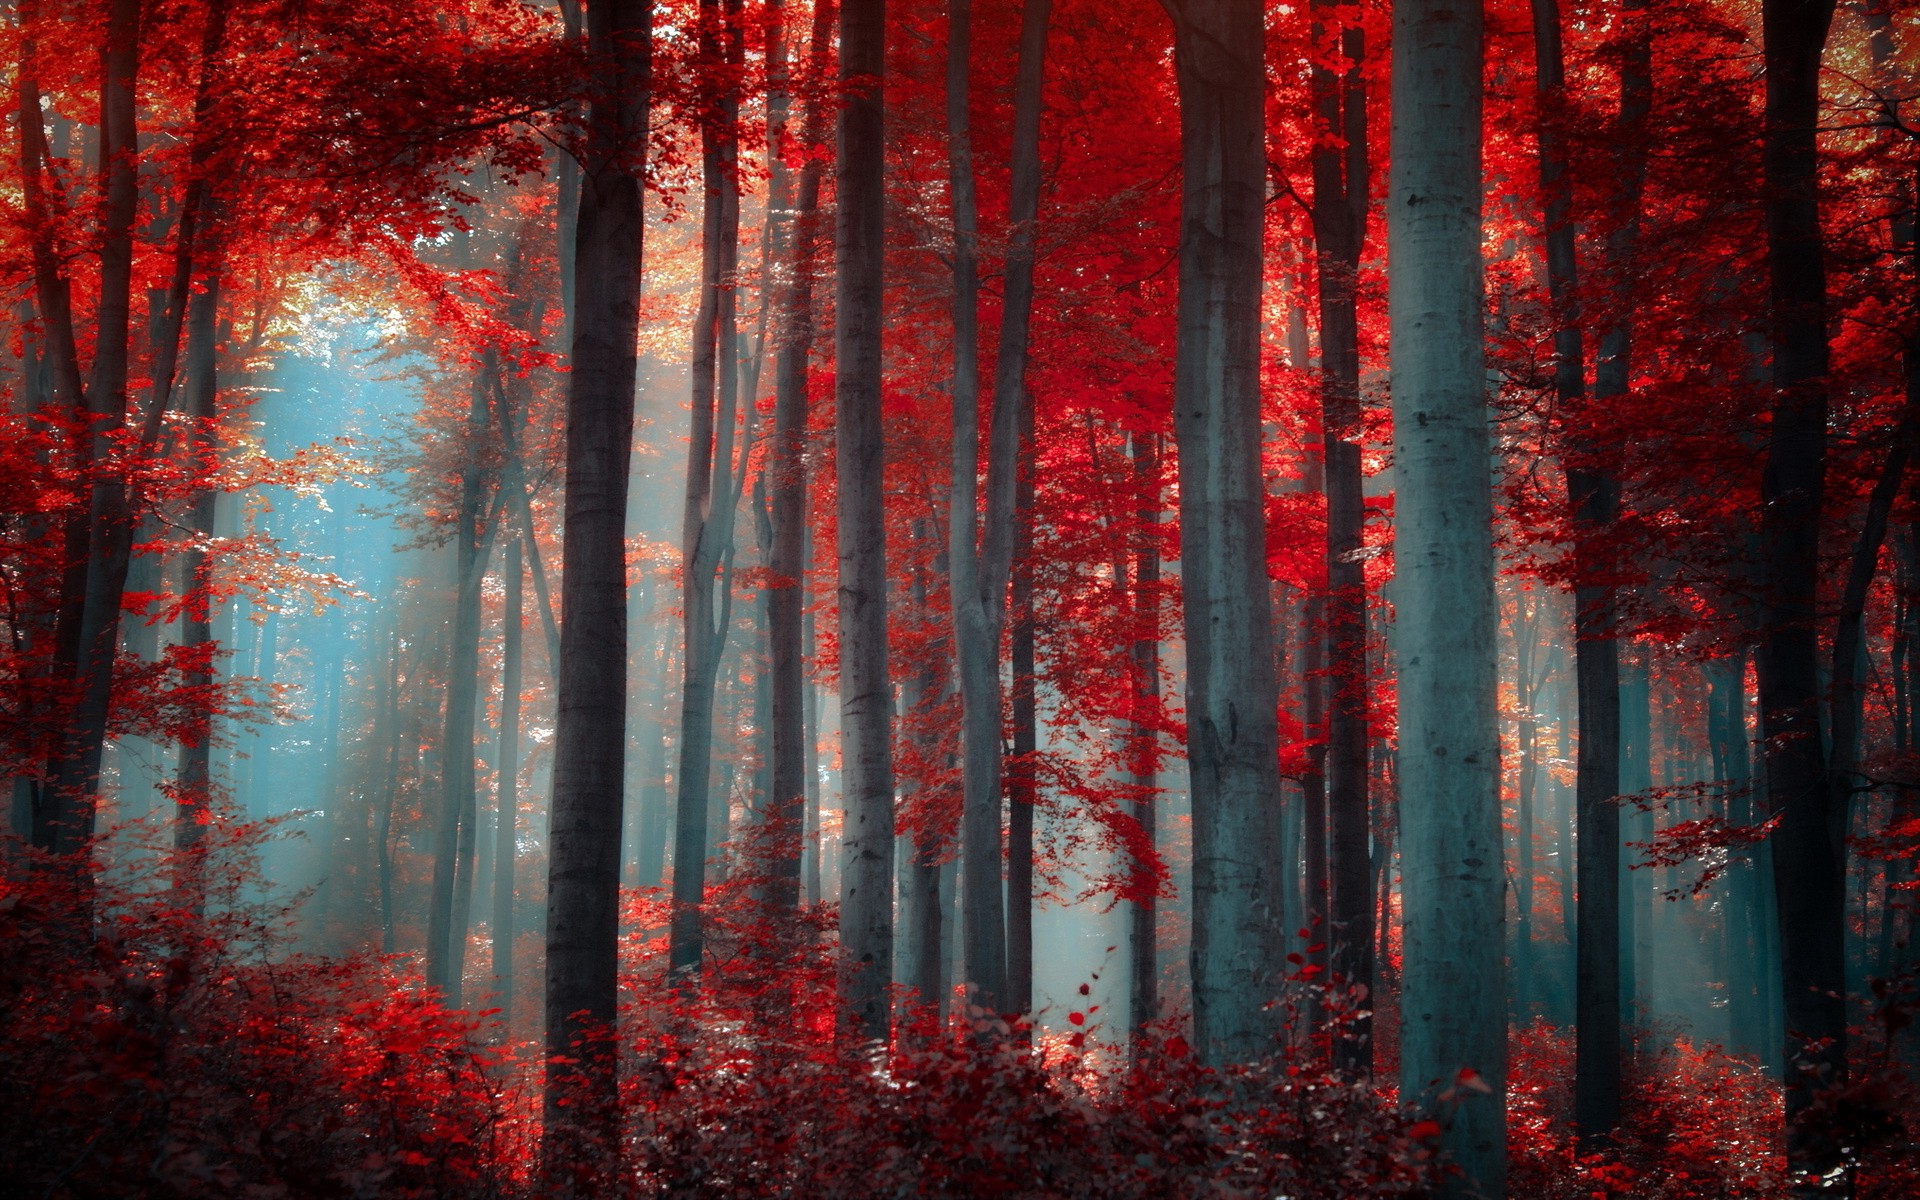 red nature wallpaper,red,forest,nature,tree,natural environment